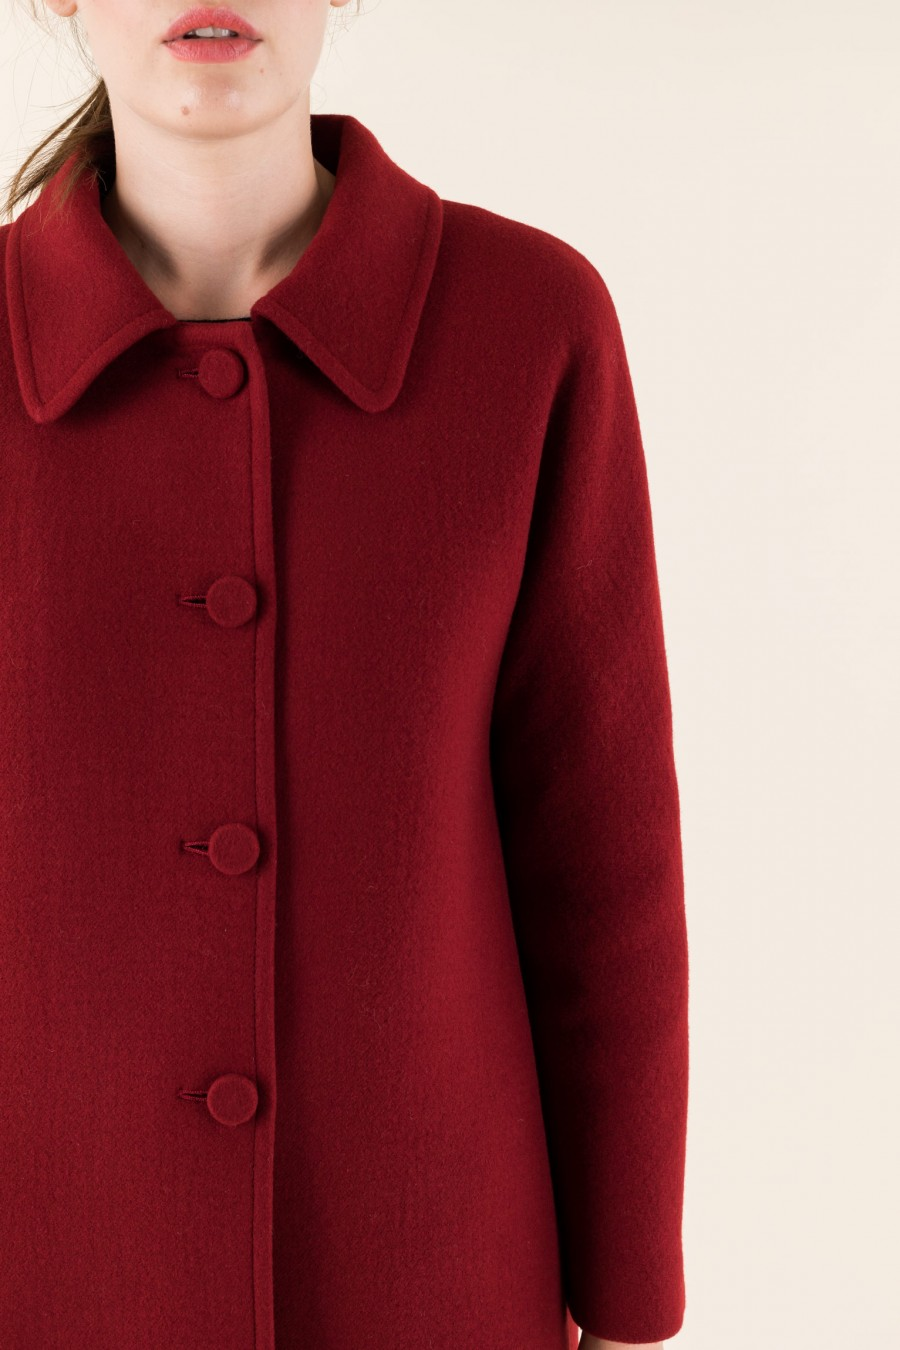 Red vintage coat with collar